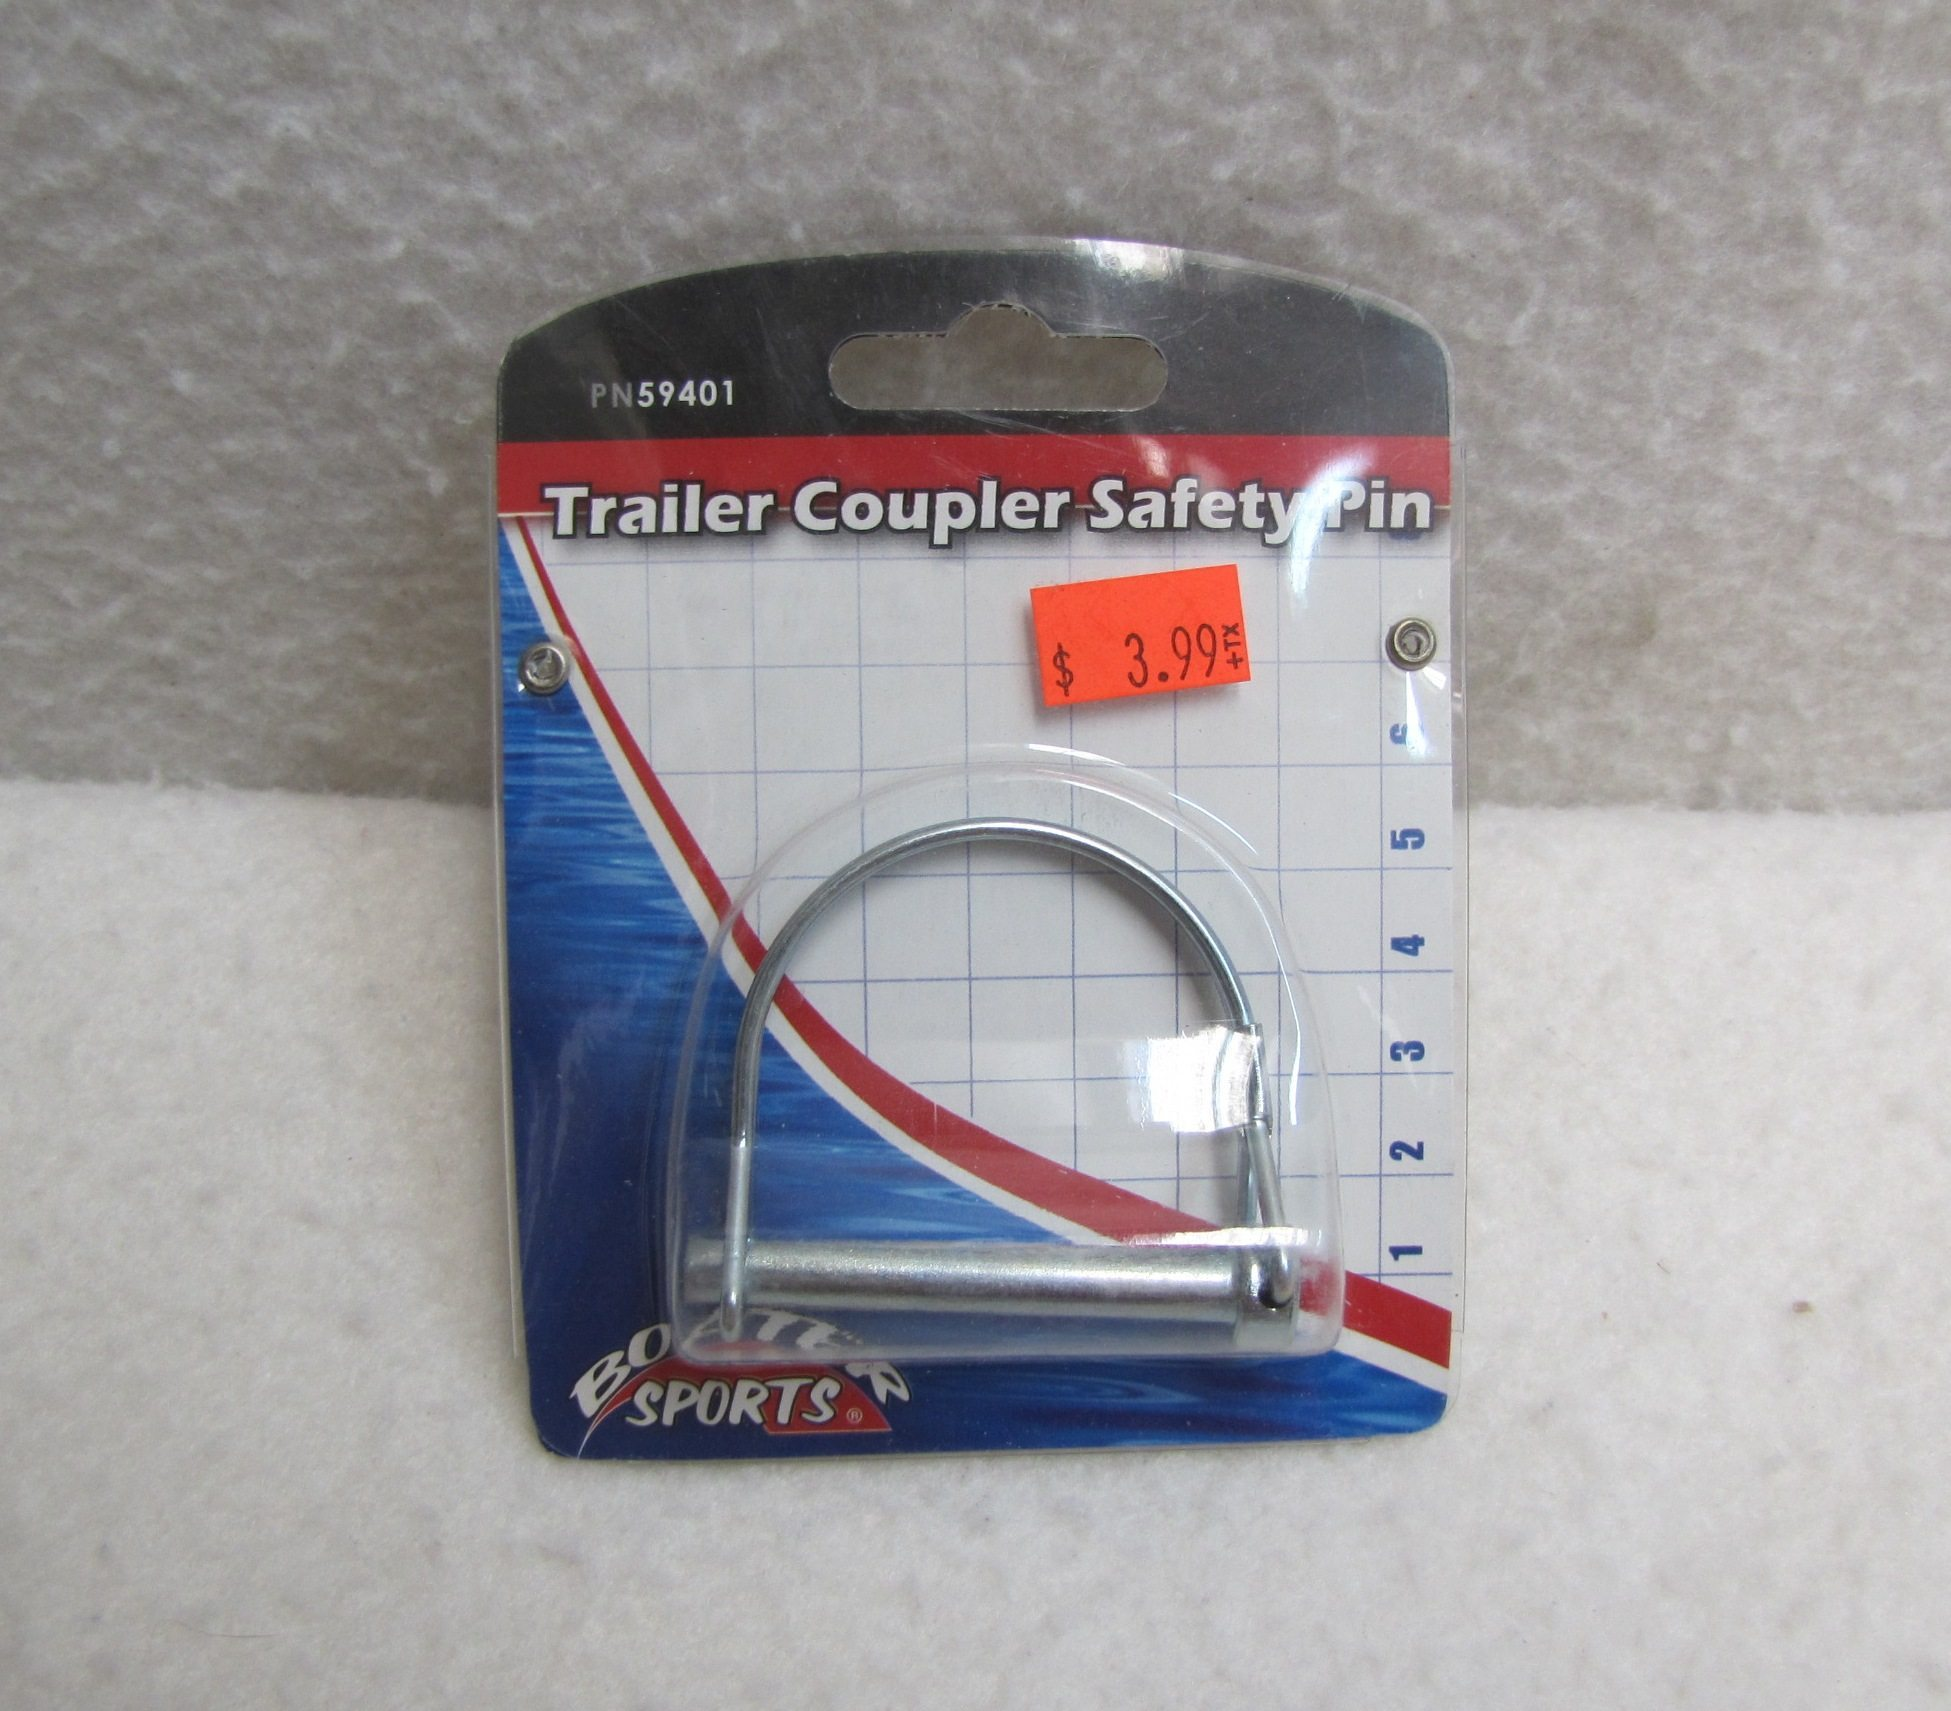 Trailer Coupler Safety Pin : Boater sports trailer coupler safety pin express